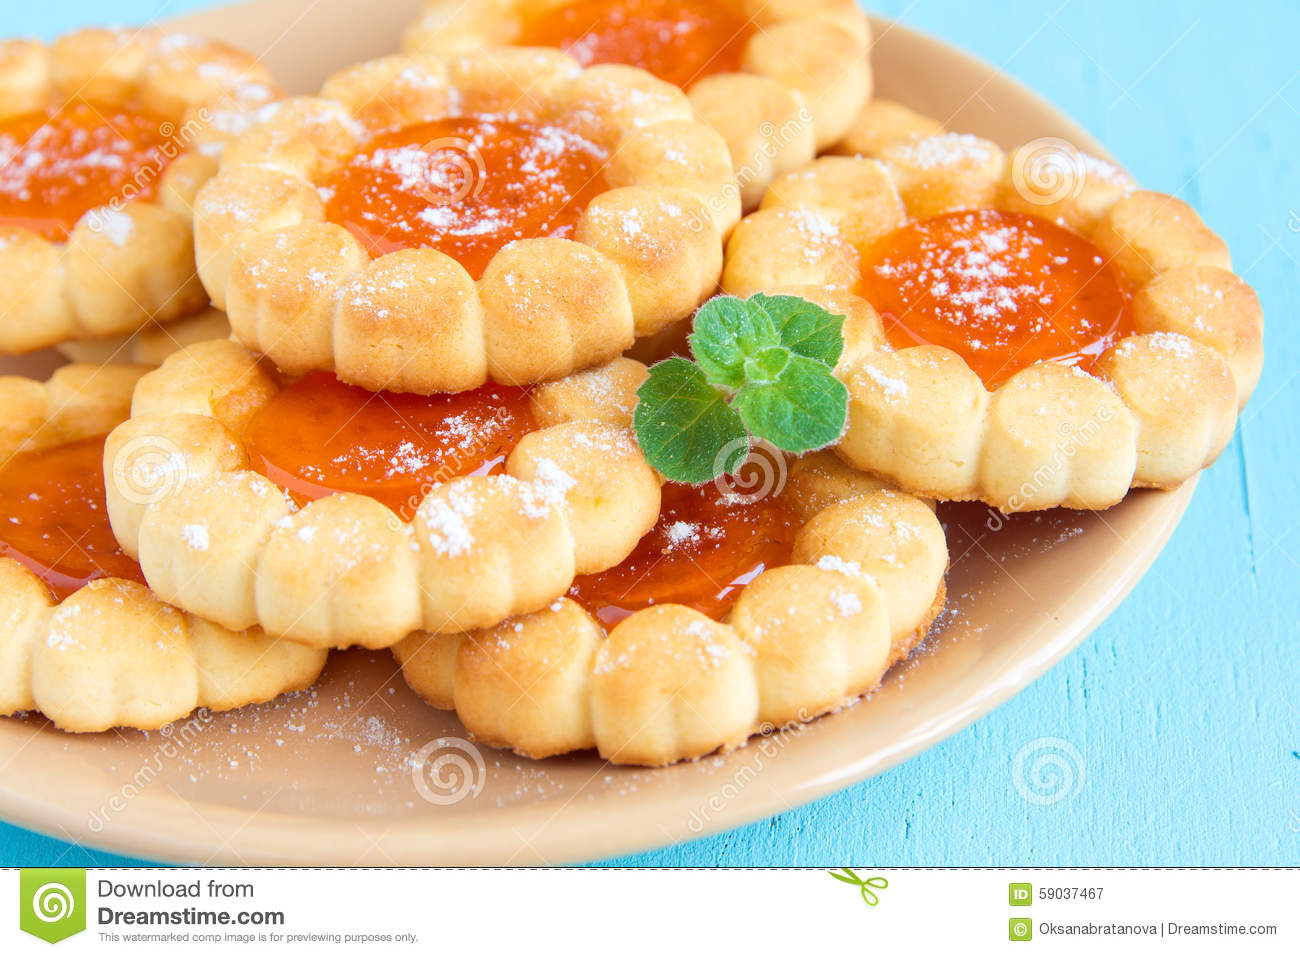 fresh cookies with fruit orange jelly and mint on plate over rustic